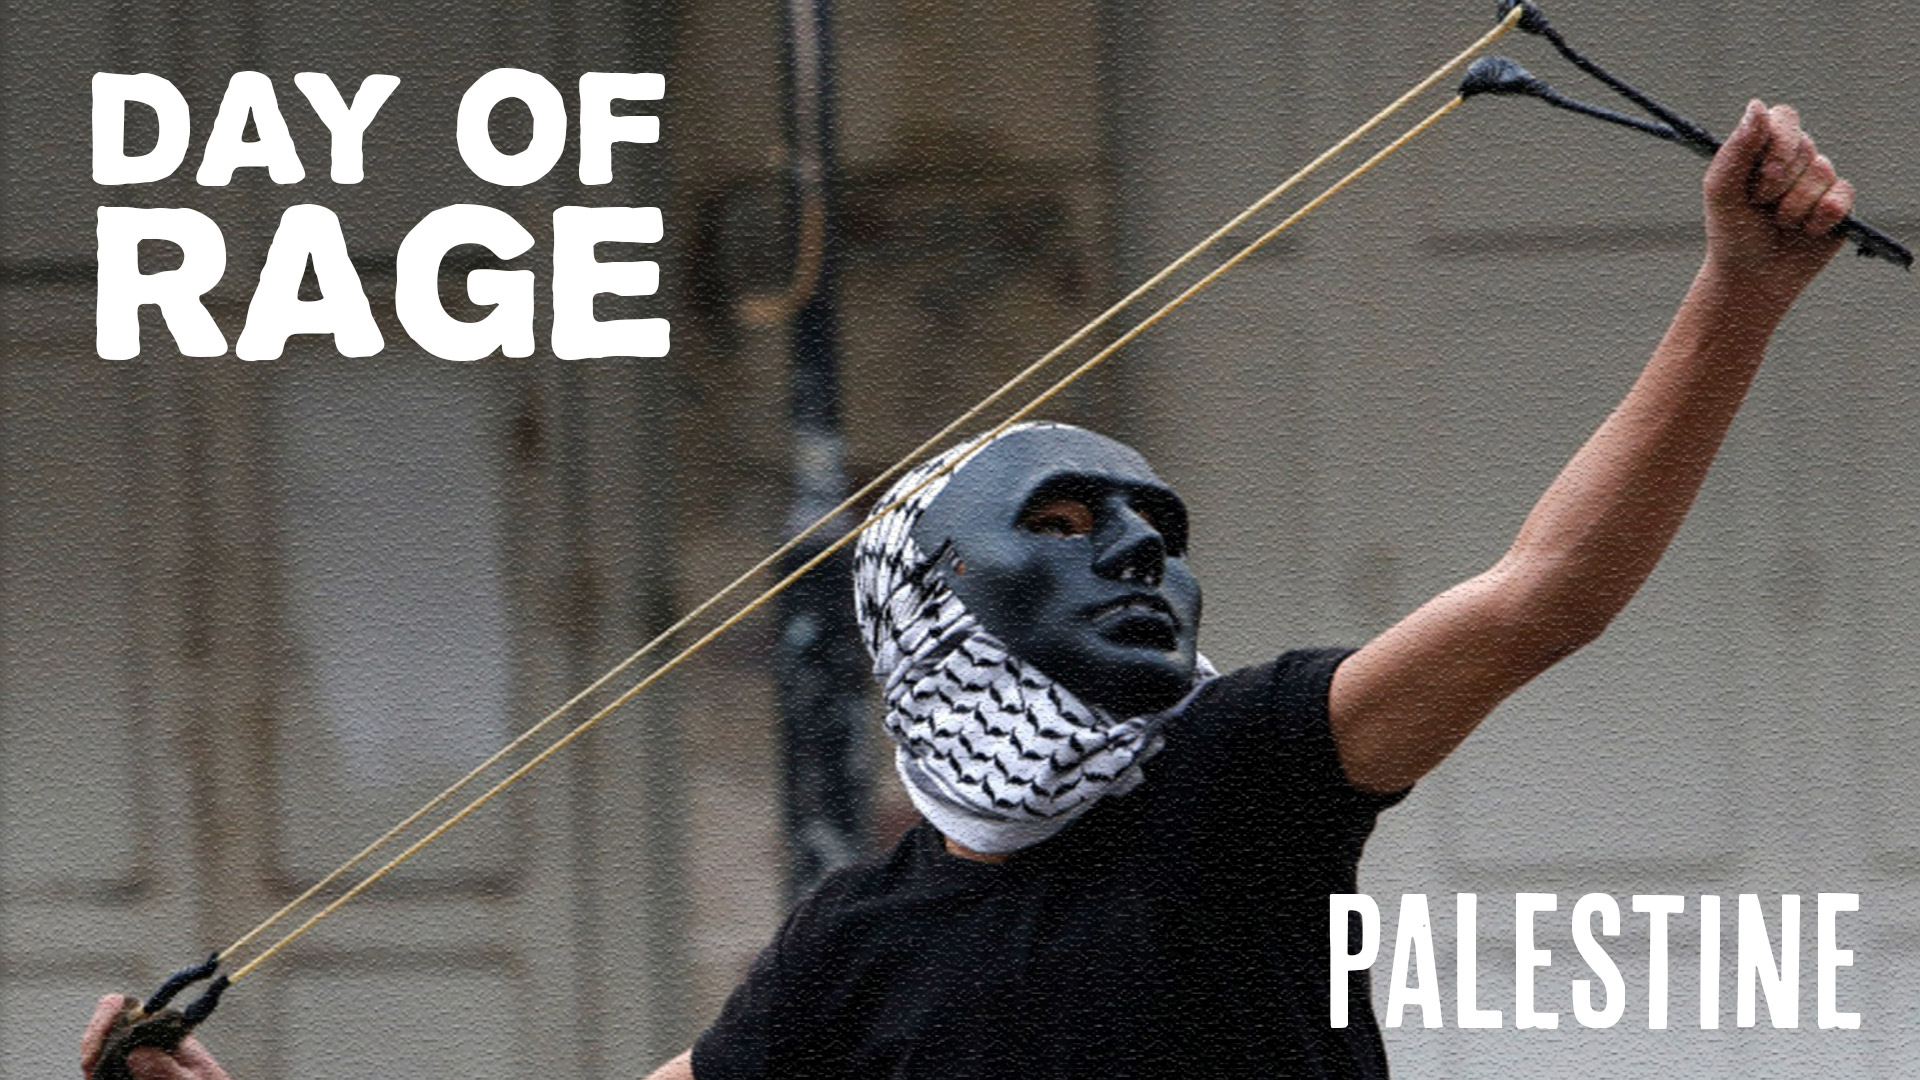 Day of rage_Palestine